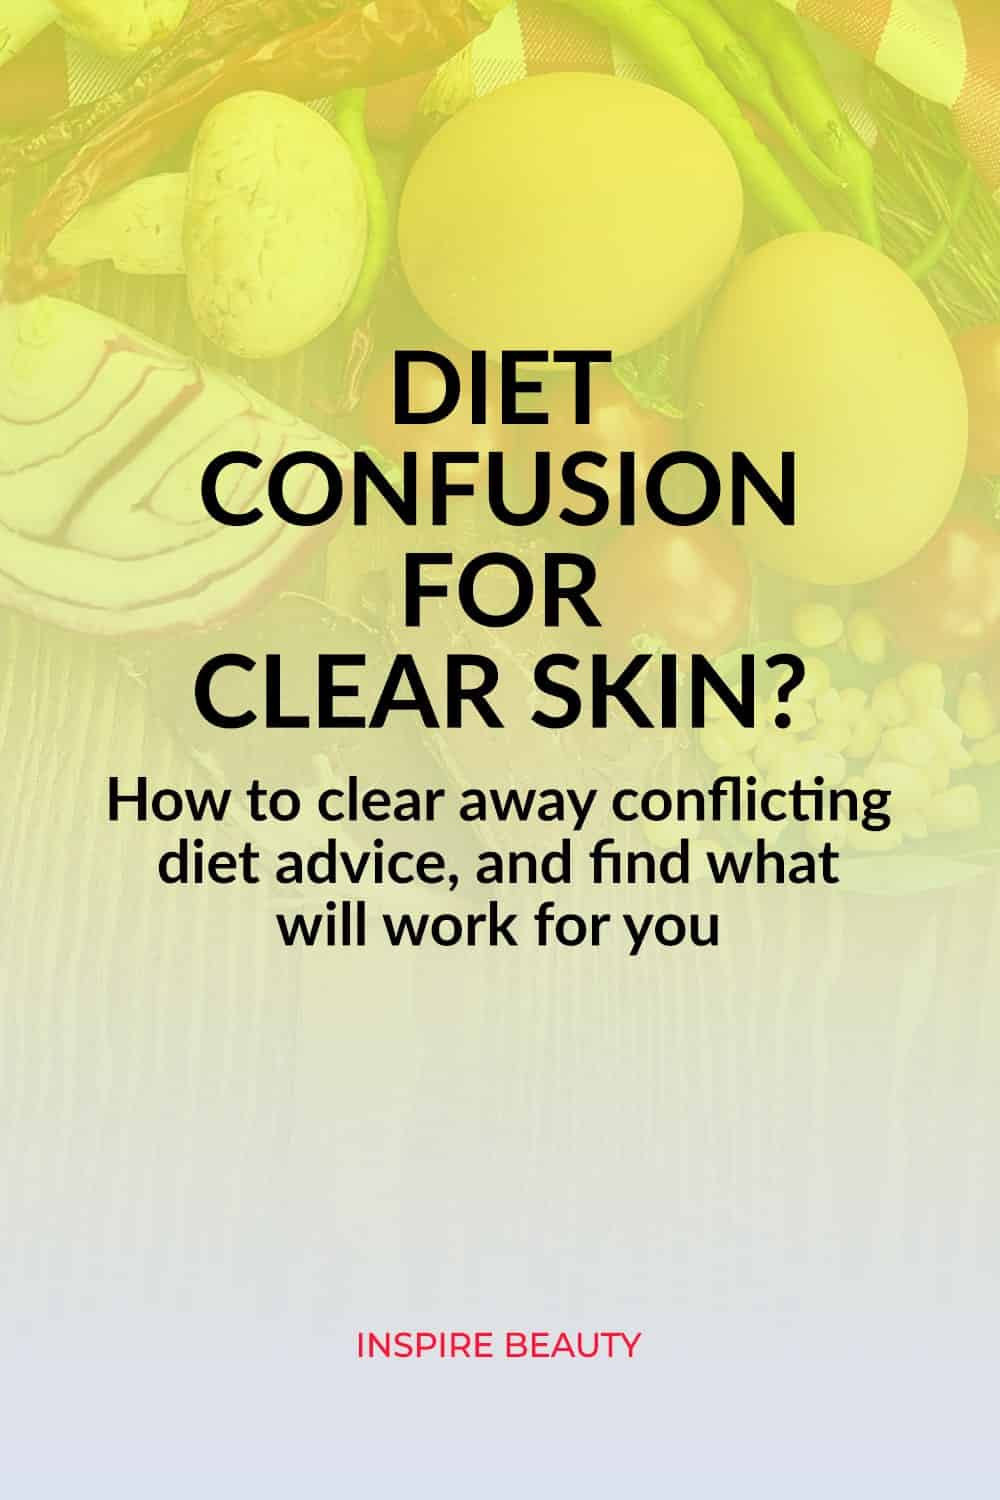 How to clear away confusing and conflicting diet advice to clear up acne and breakouts.